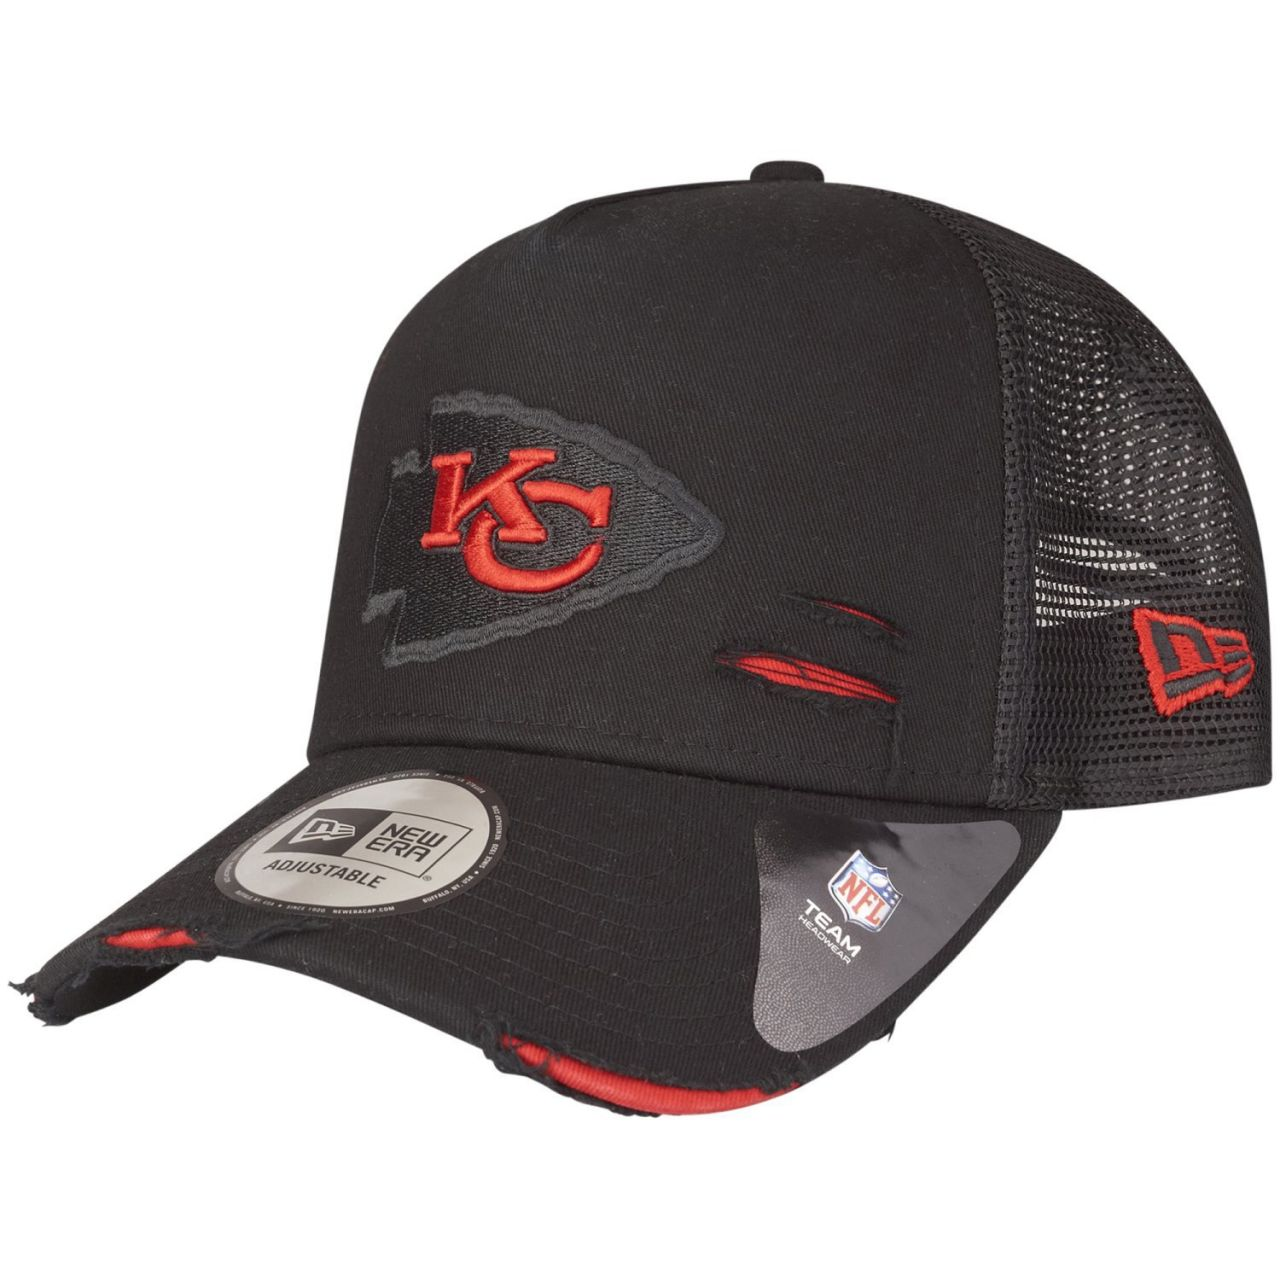 amfoo - New Era Adjustable Trucker Cap DISTRESSED Kansas City Chiefs